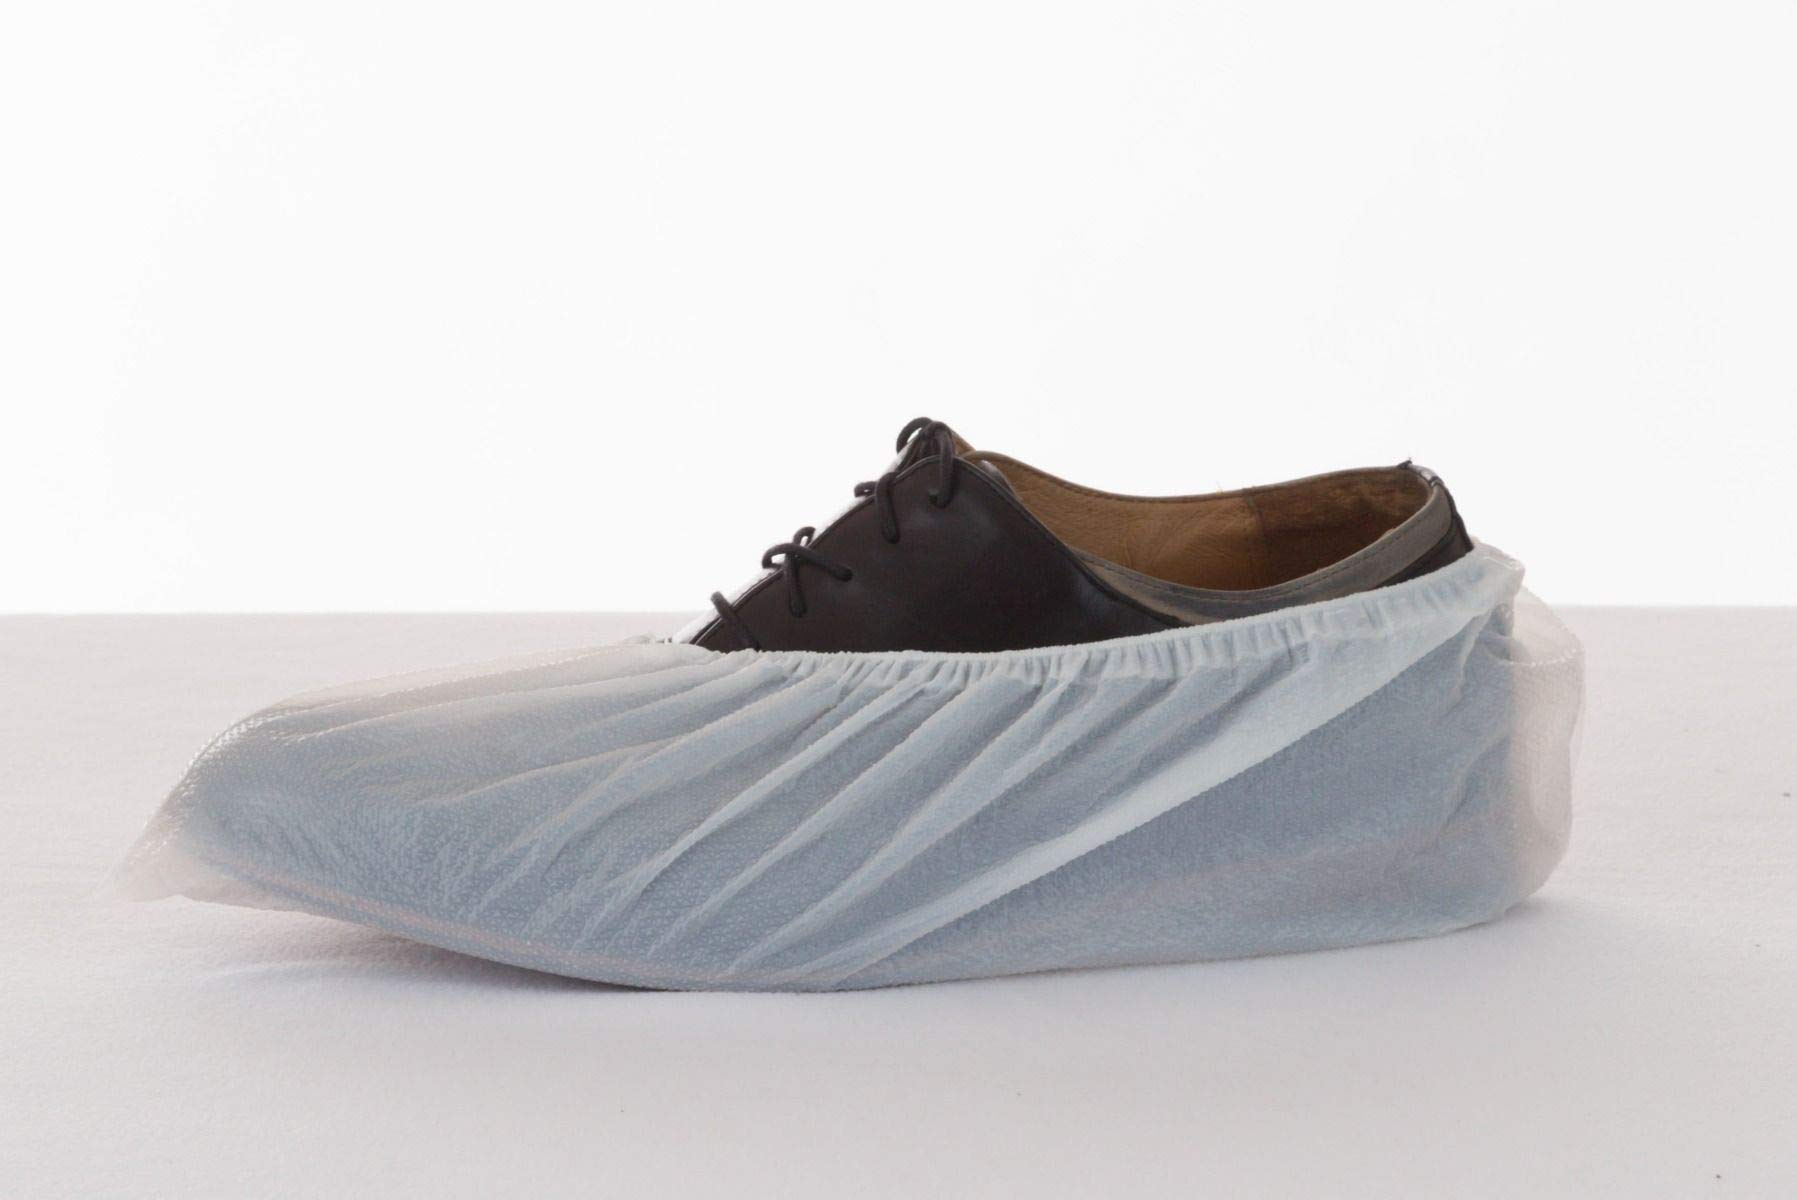 Enviroguard CPE Shoe Cover, Disposable, White, Universal (Case of 1000)